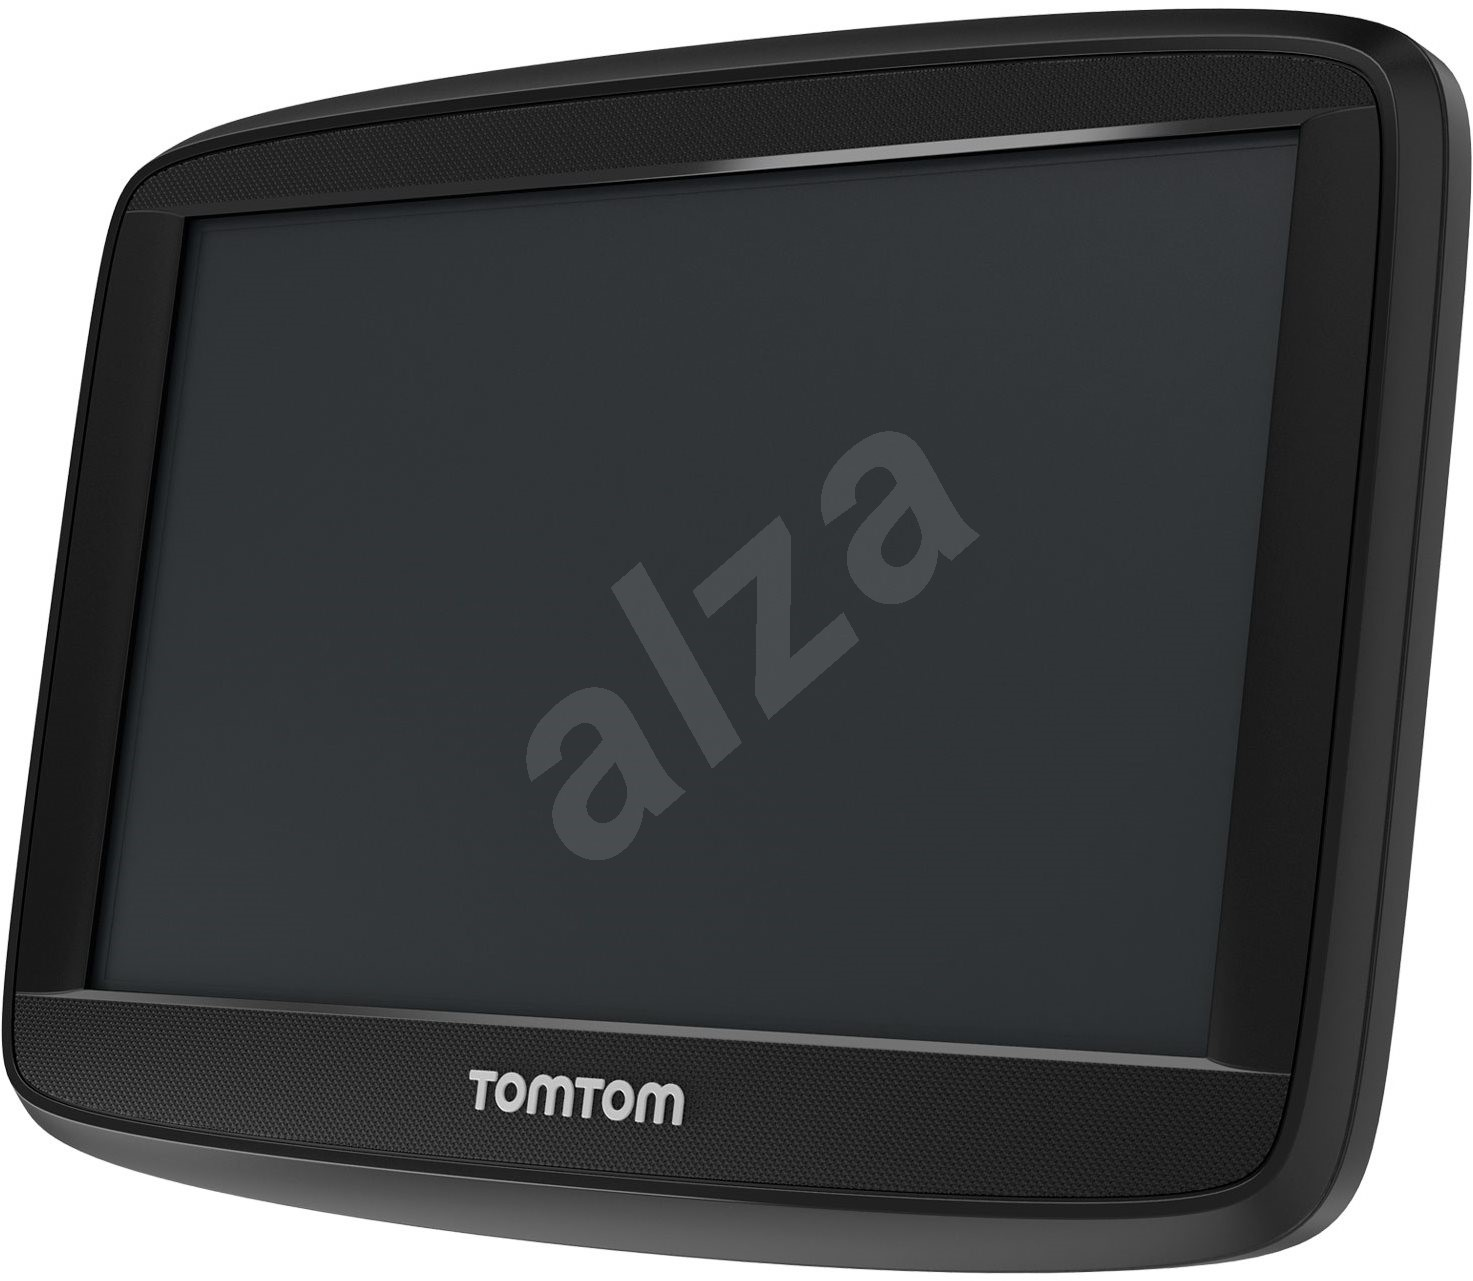 tomtom via 52 europe lifetime maps gps navigation. Black Bedroom Furniture Sets. Home Design Ideas